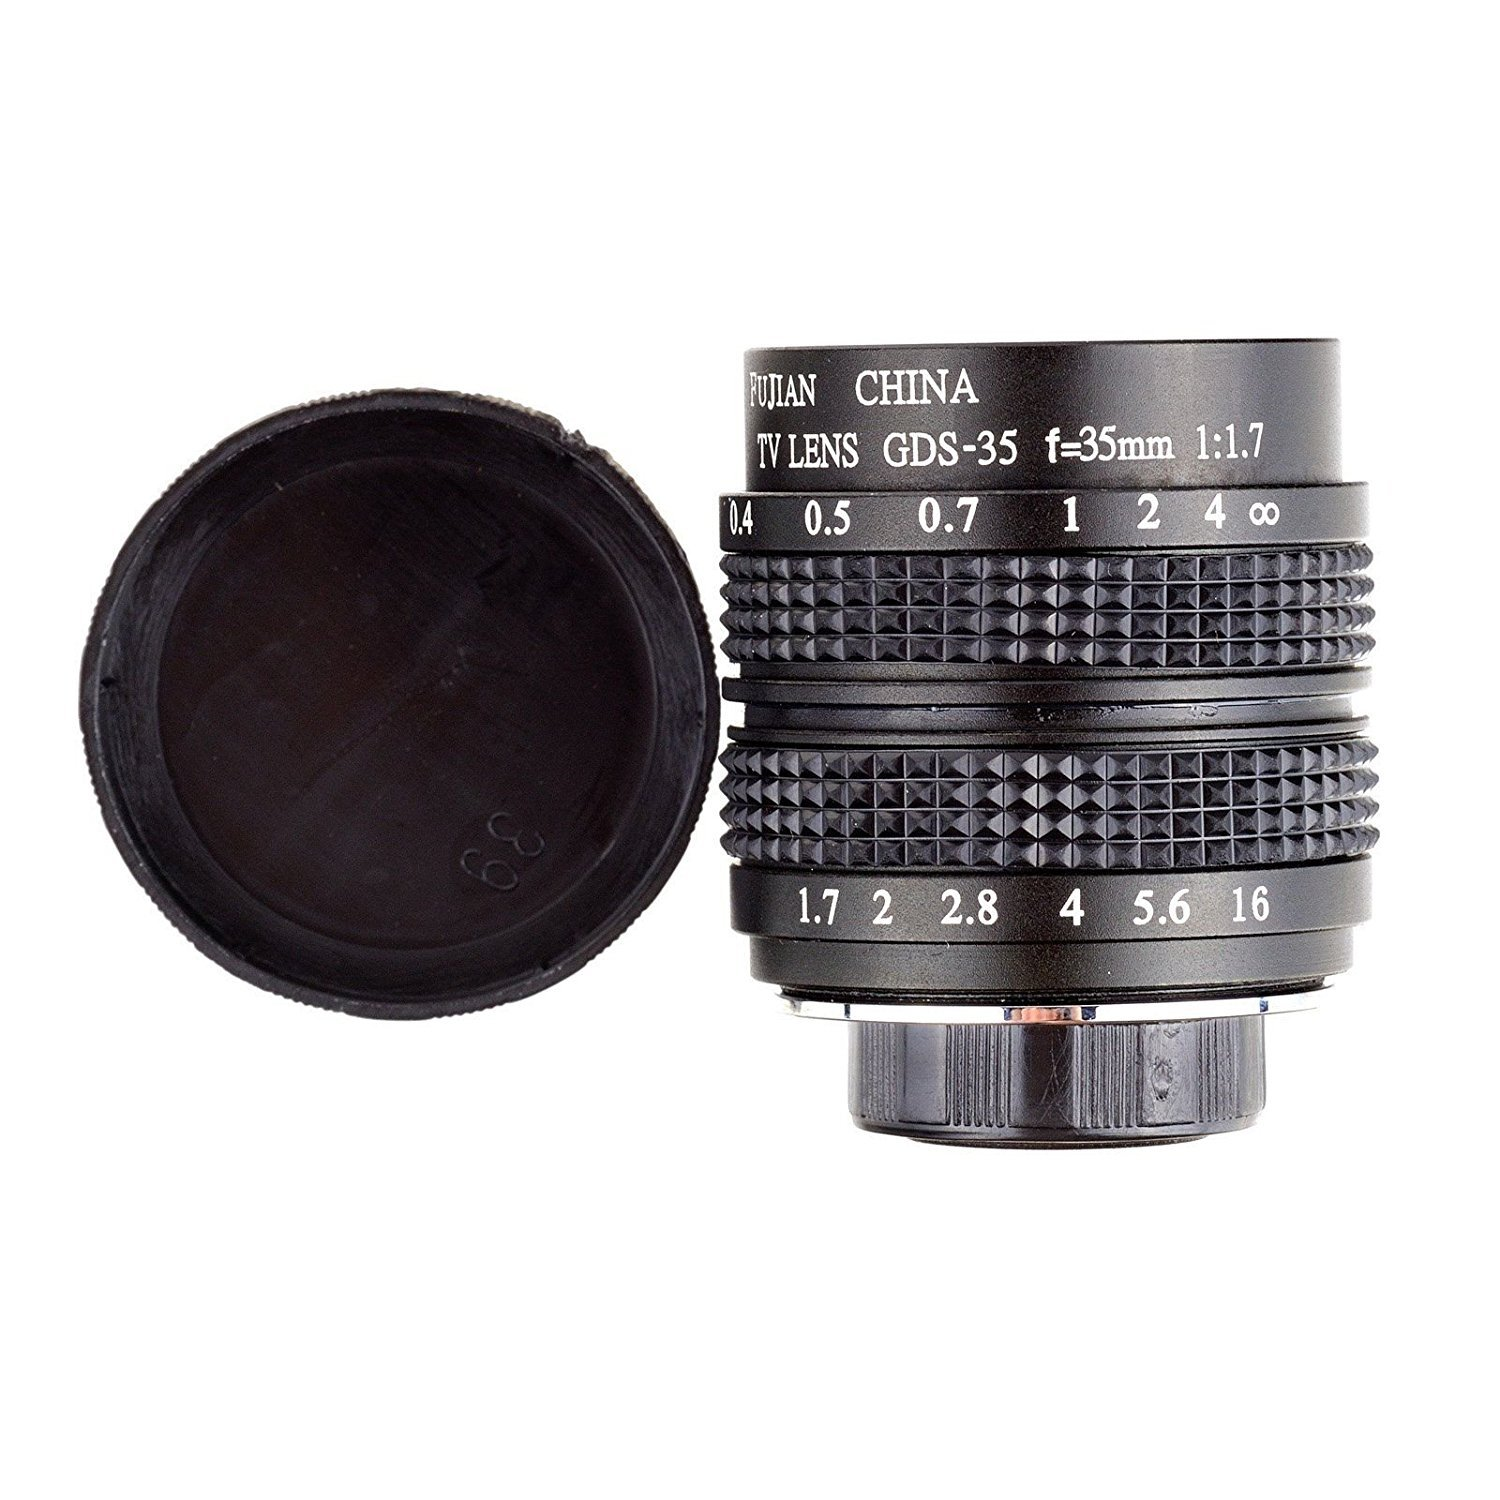 Fujian 35mm f/1.7 CCTV cine lens for M4/3 / MFT Mount Camera & Adapter bundle black Micro 4/3 M4/3 GF3 GF5 E-PL3 E-P3 E-PM1